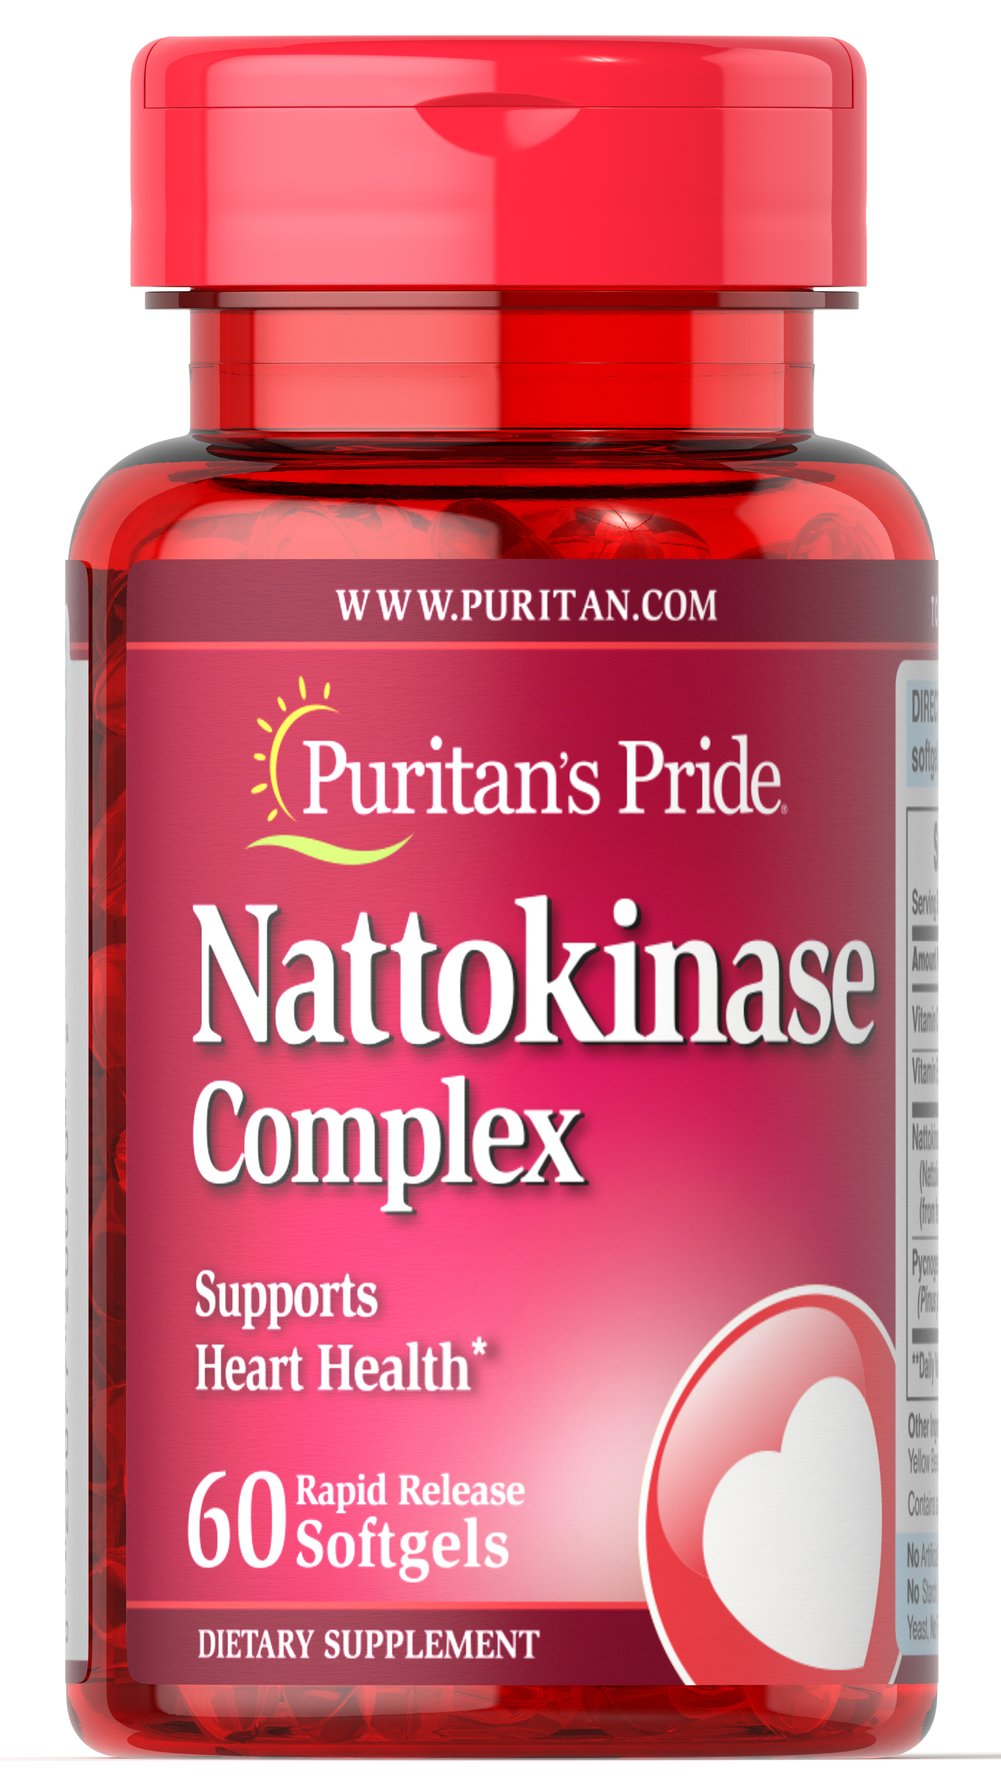 Nattokinase 100 mg Complex What the Japanese Know<br><br>The Japanese diet has long been known as heart healthy, in large part because it contains substantial amounts of soy-based nutrients.** Nattokinase is a beneficial enzyme derived from the fermented Japanese soybean called Natto, and is provided here in a rapid-release softgel.<br>• Nattokinase supports Heart and Circulatory Health**<br> 60 Softgels 100 mg $51.49